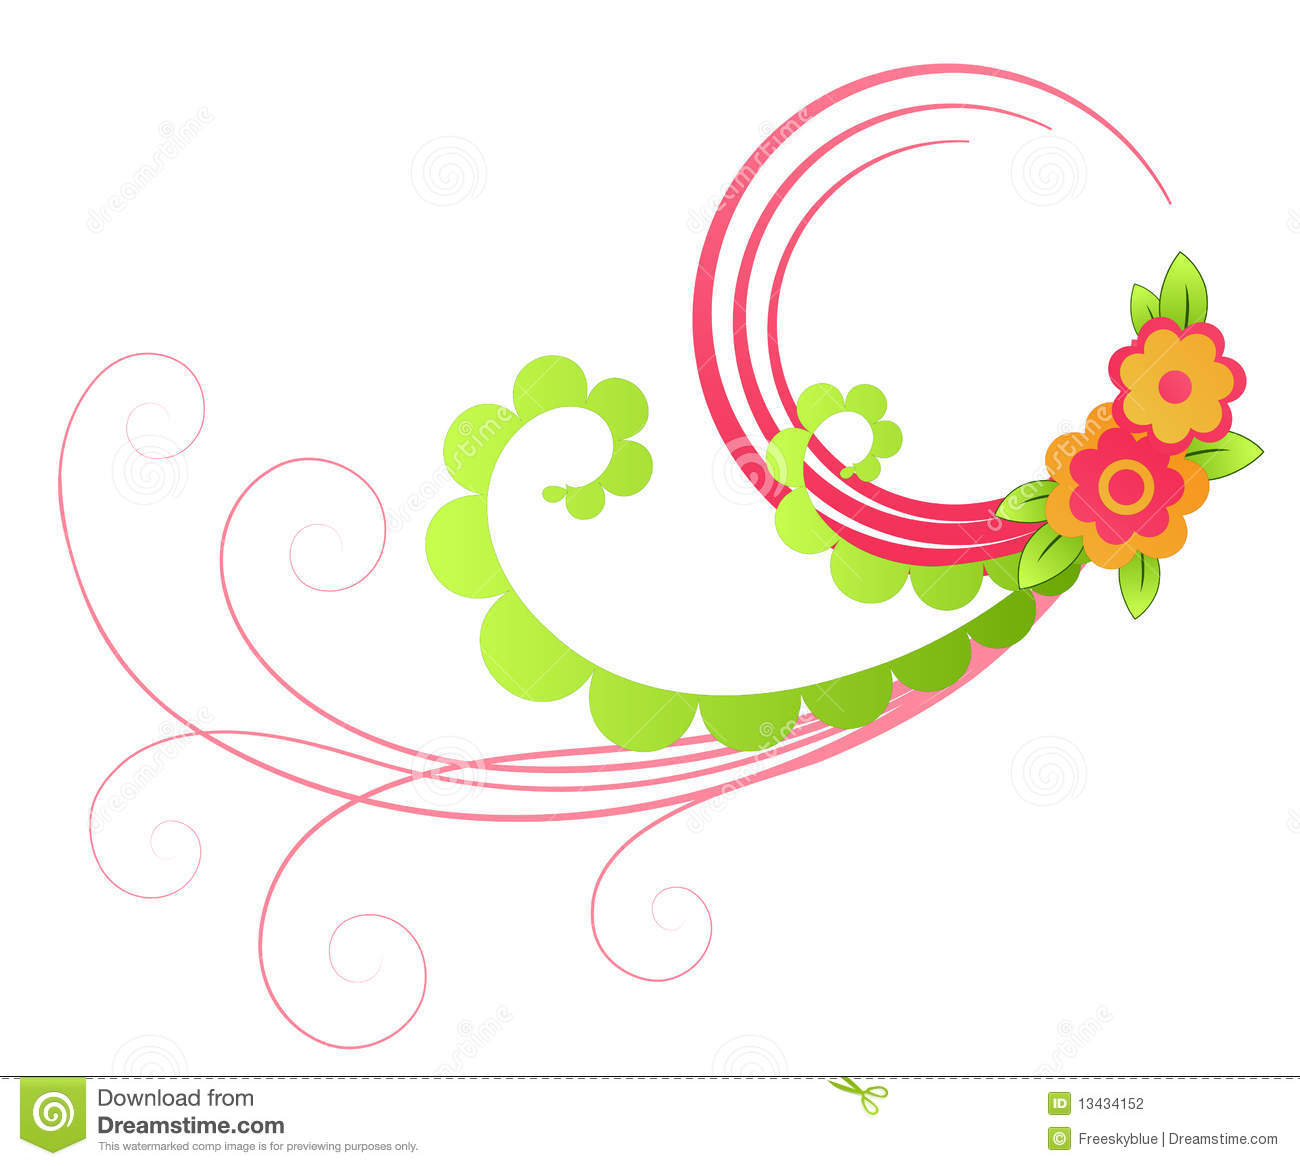 Flower Vine Clipart And Flowers Vine Summer, Flower Vine Free.